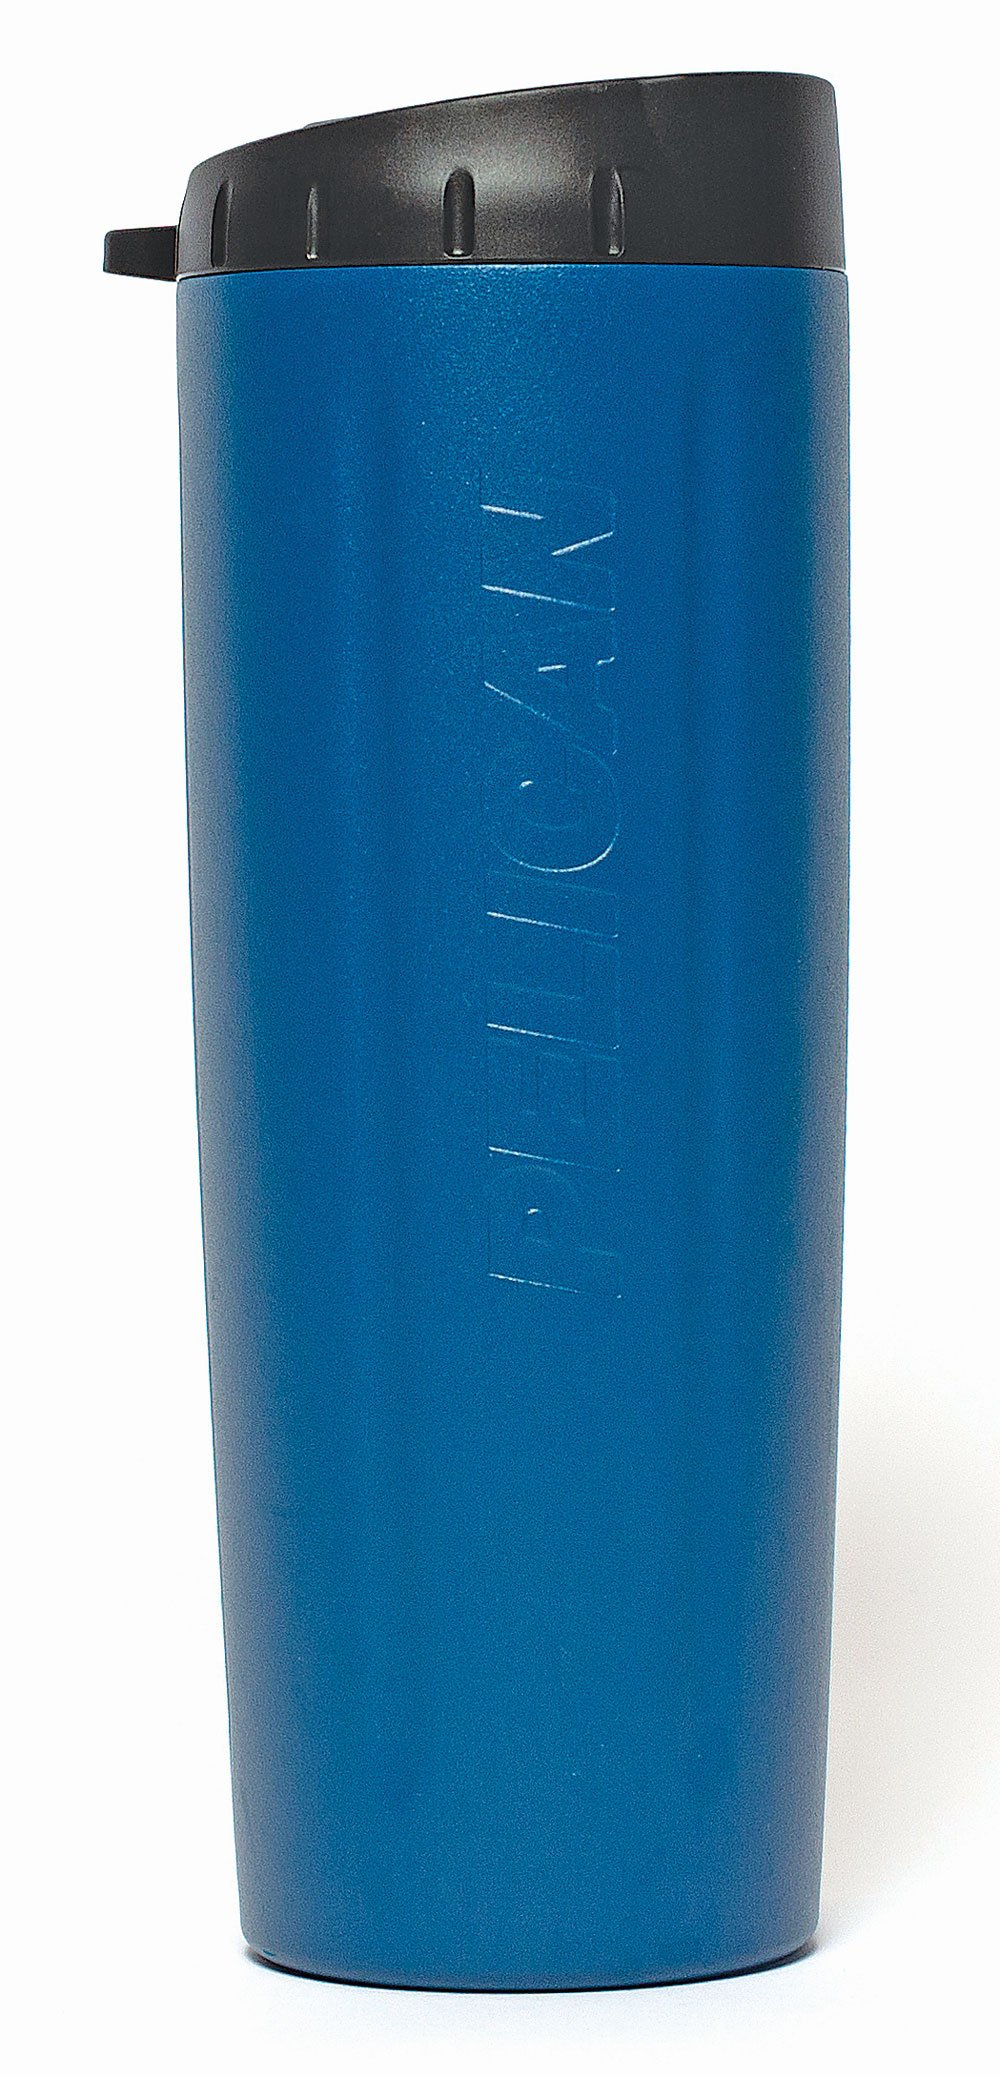 Outdoor new products: Pelican Dayventure Tumbler